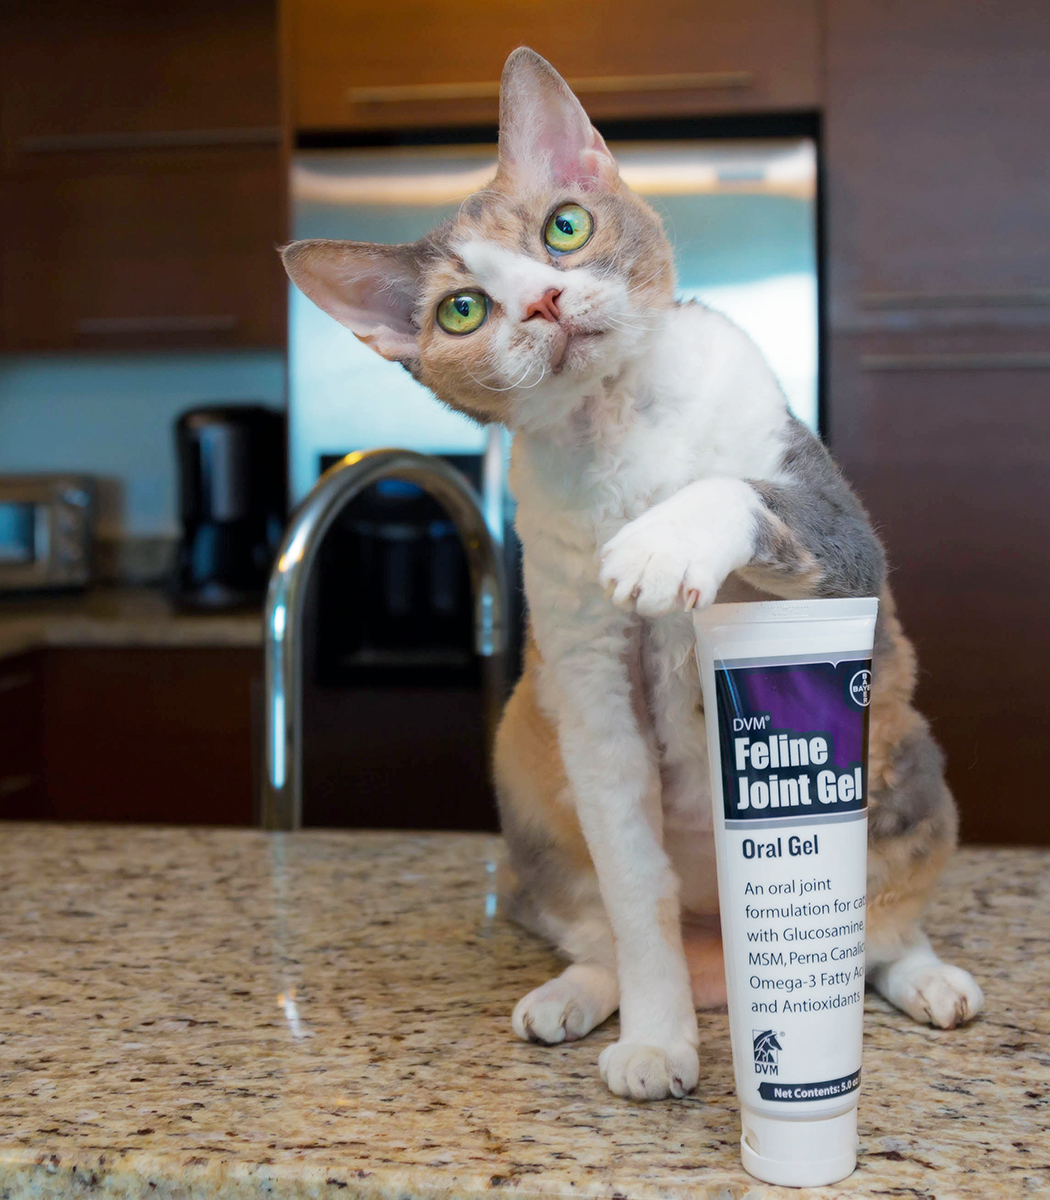 cosequin for cats bladder inflammation cosequin for cats pet joint supplement for cats. Black Bedroom Furniture Sets. Home Design Ideas